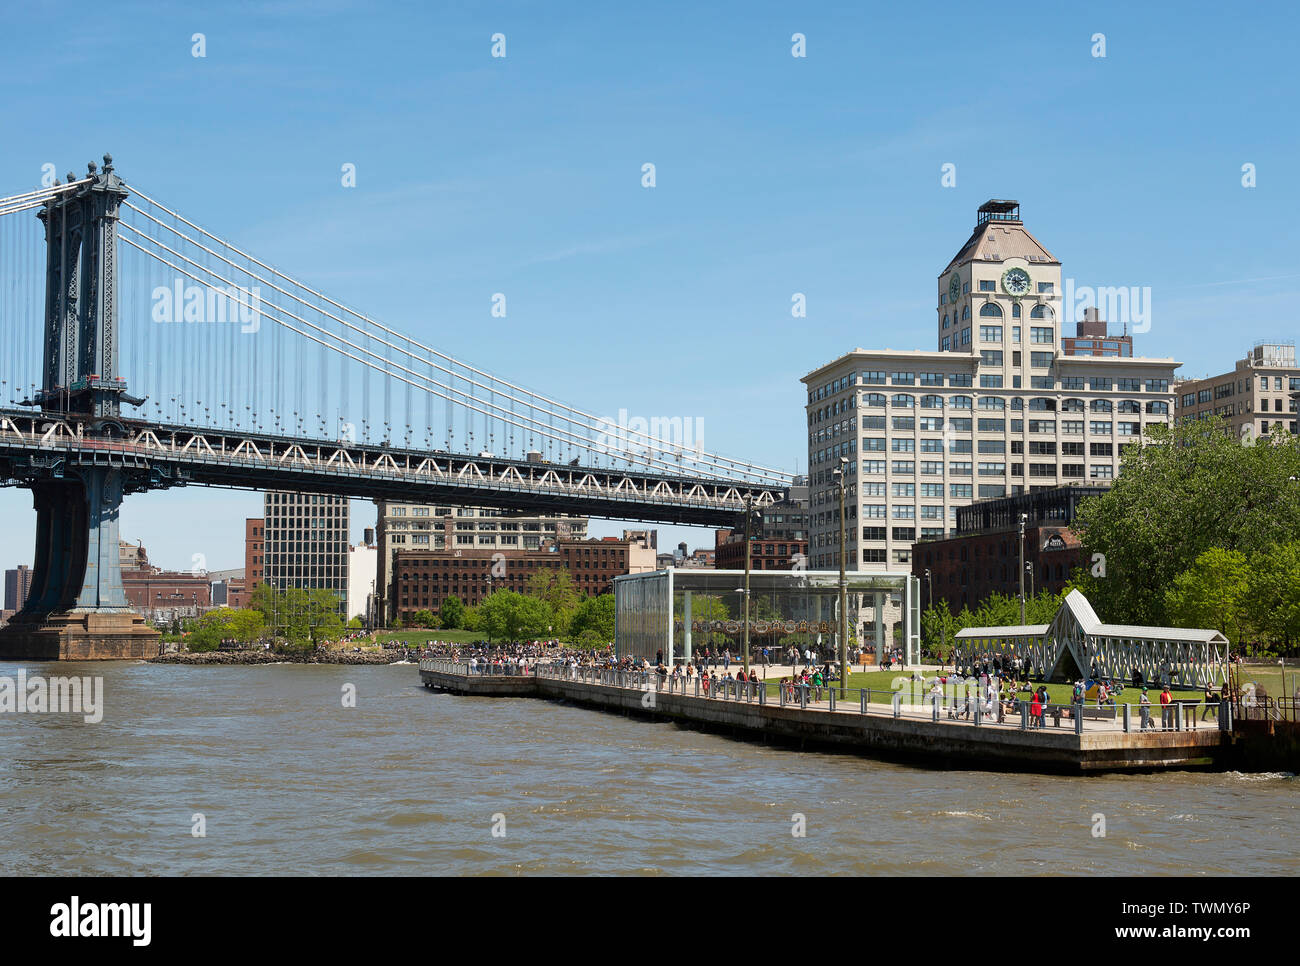 The Brooklyn waterfront in Dumbo, New York. - Stock Image